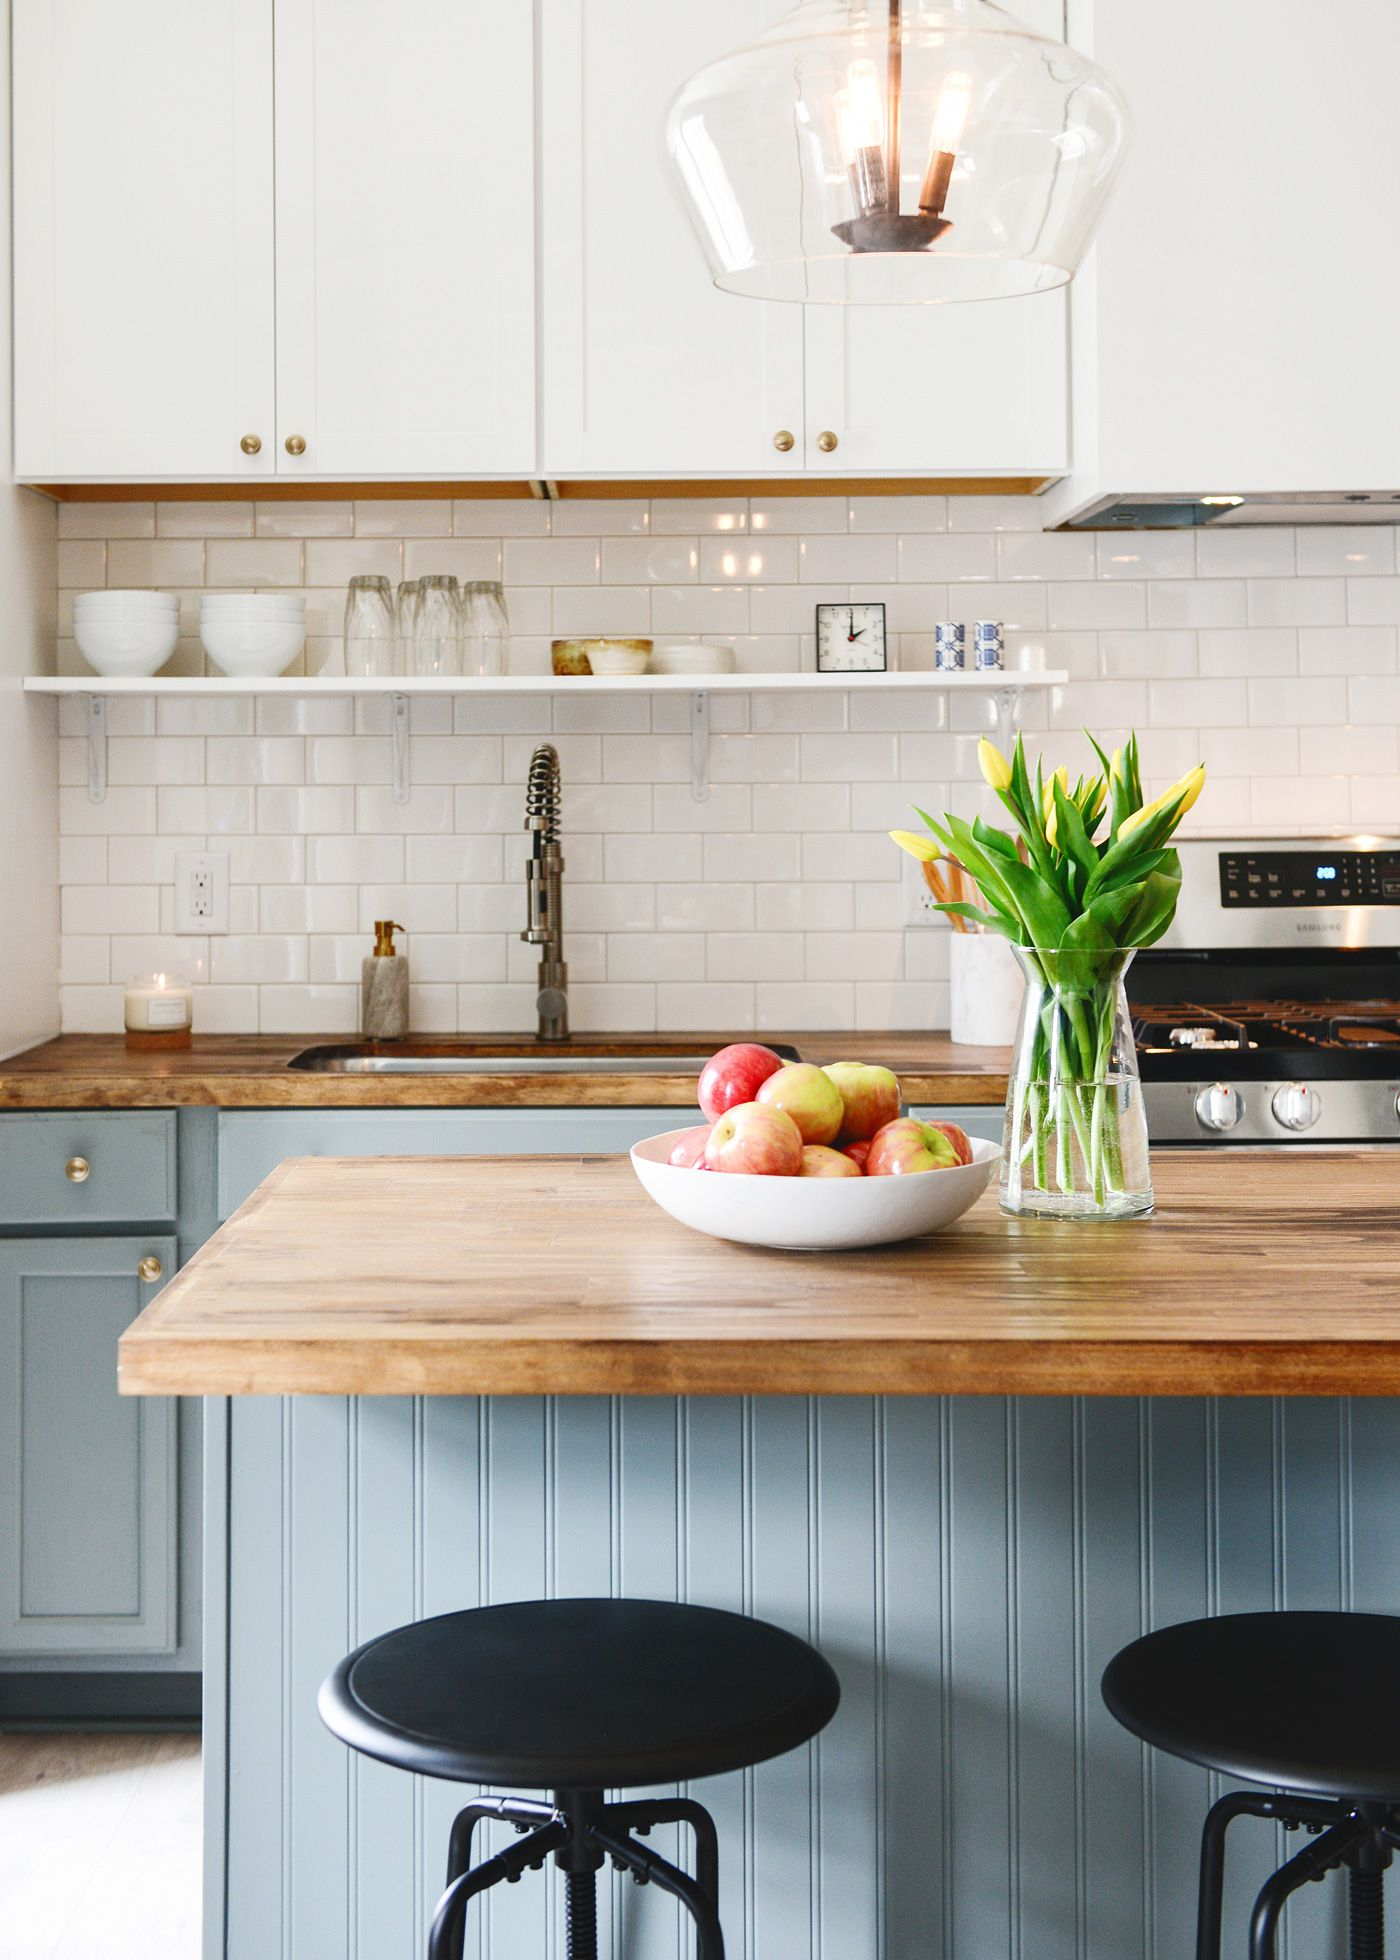 100 year old home gets a 3 day kitchen makeover for less than $5k